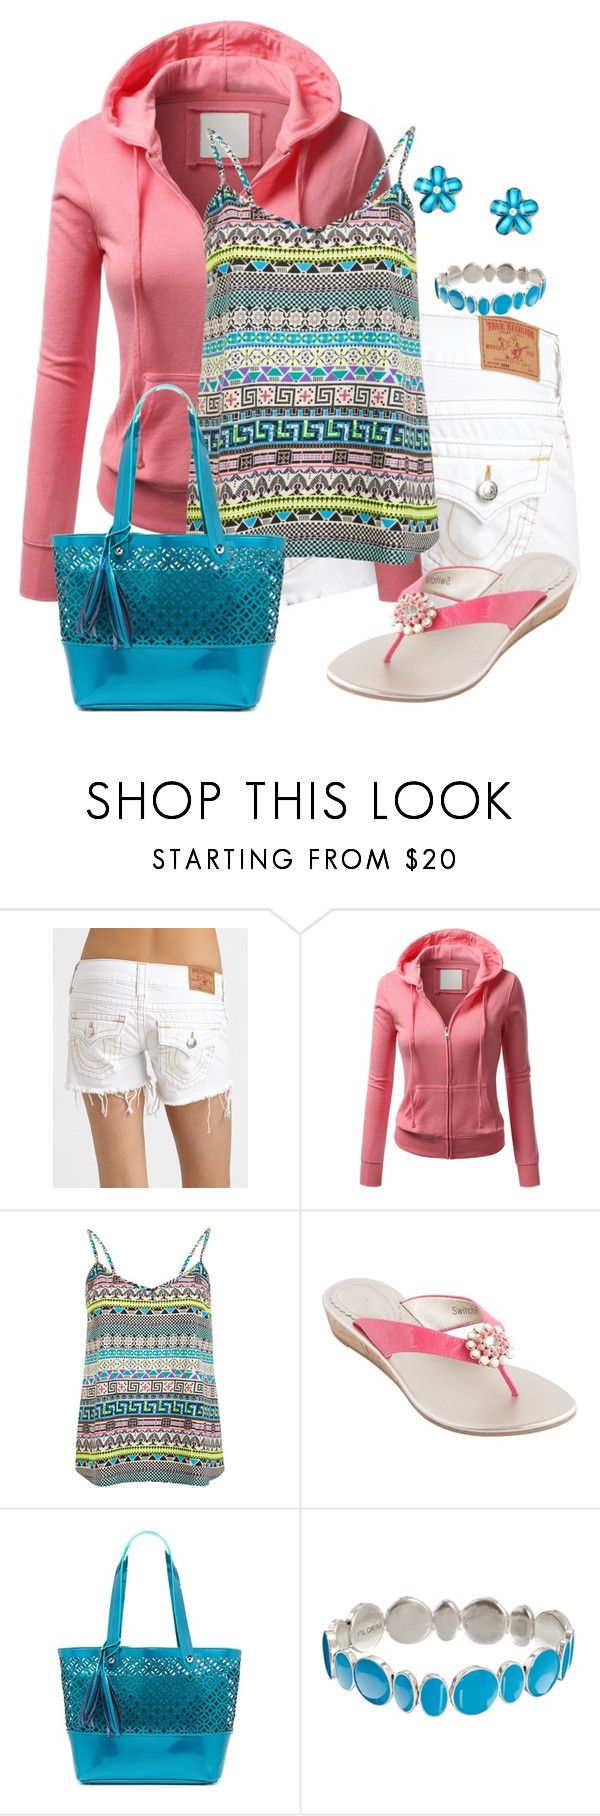 """""""Cool Summer Evenings"""" by jennifernoriega ❤ liked on Polyvore featuring True Religion, J.TOMSON, Miss Selfridge, Lindsay Phillips, BUCO and Pilgrim"""